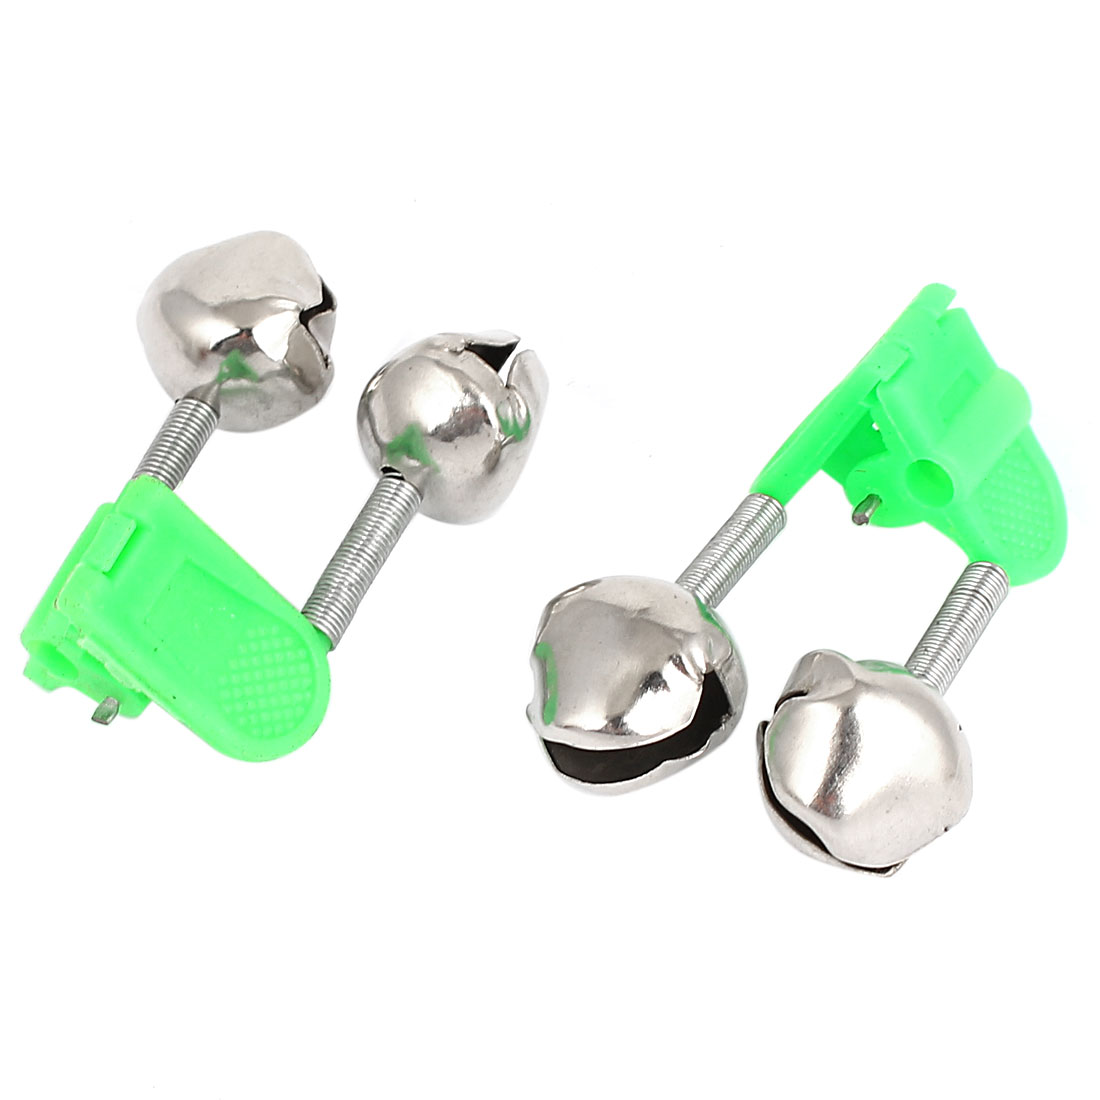 Fishing Rod Plastic Clip Clamp Metal Double Bell Ring Alarm Alert Green 2Pcs